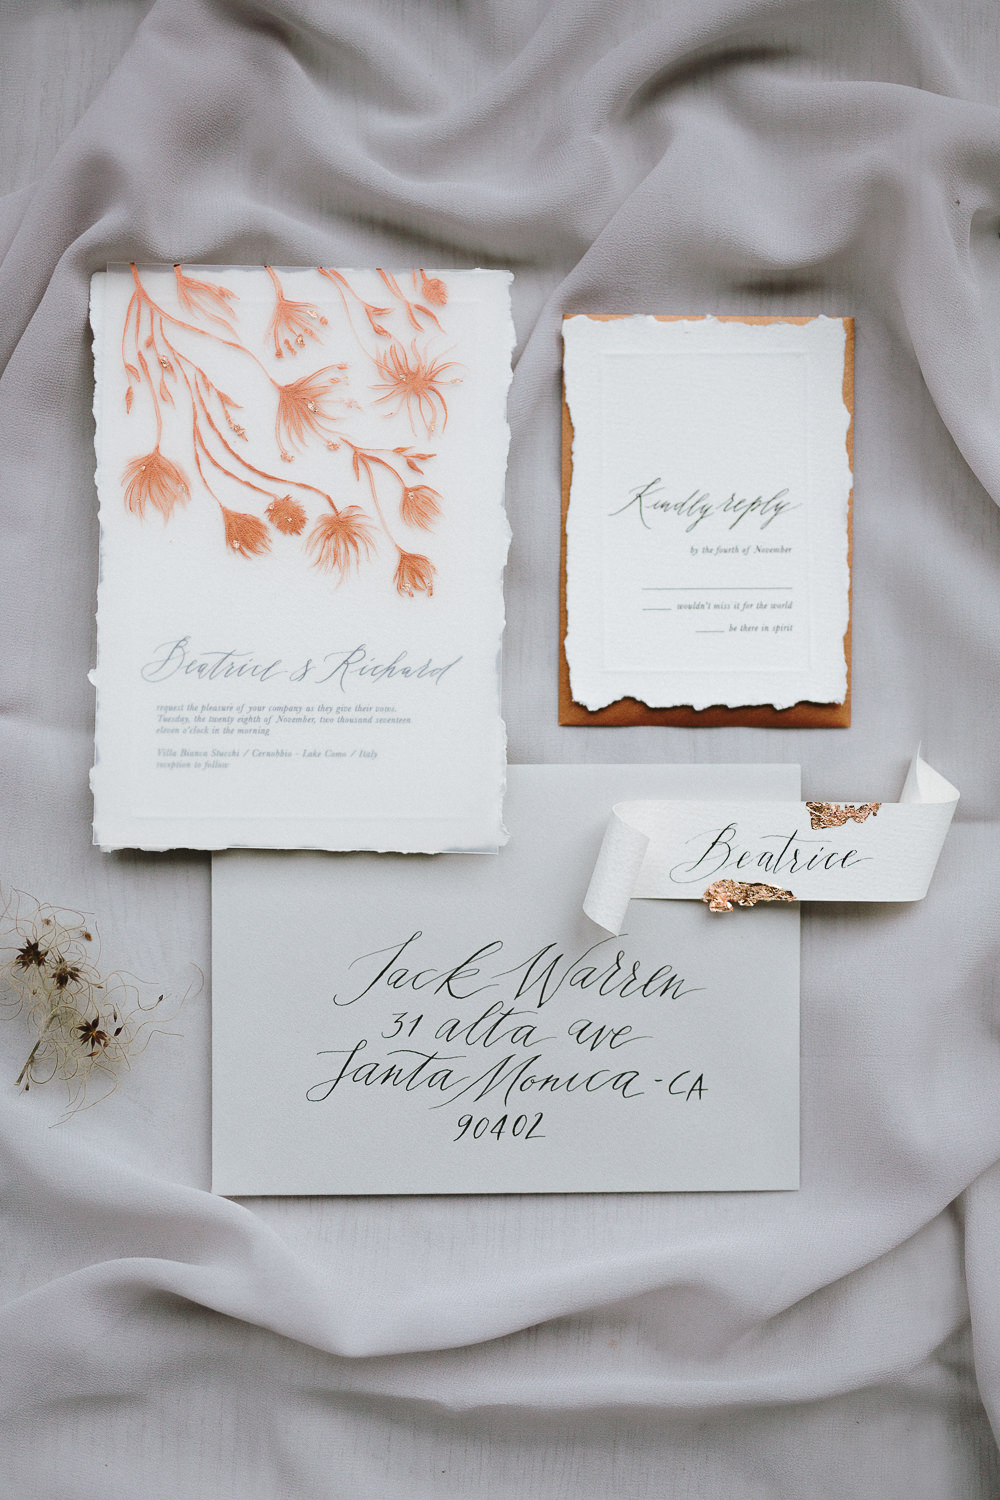 bespoke_wedding_invitation_copper_foil